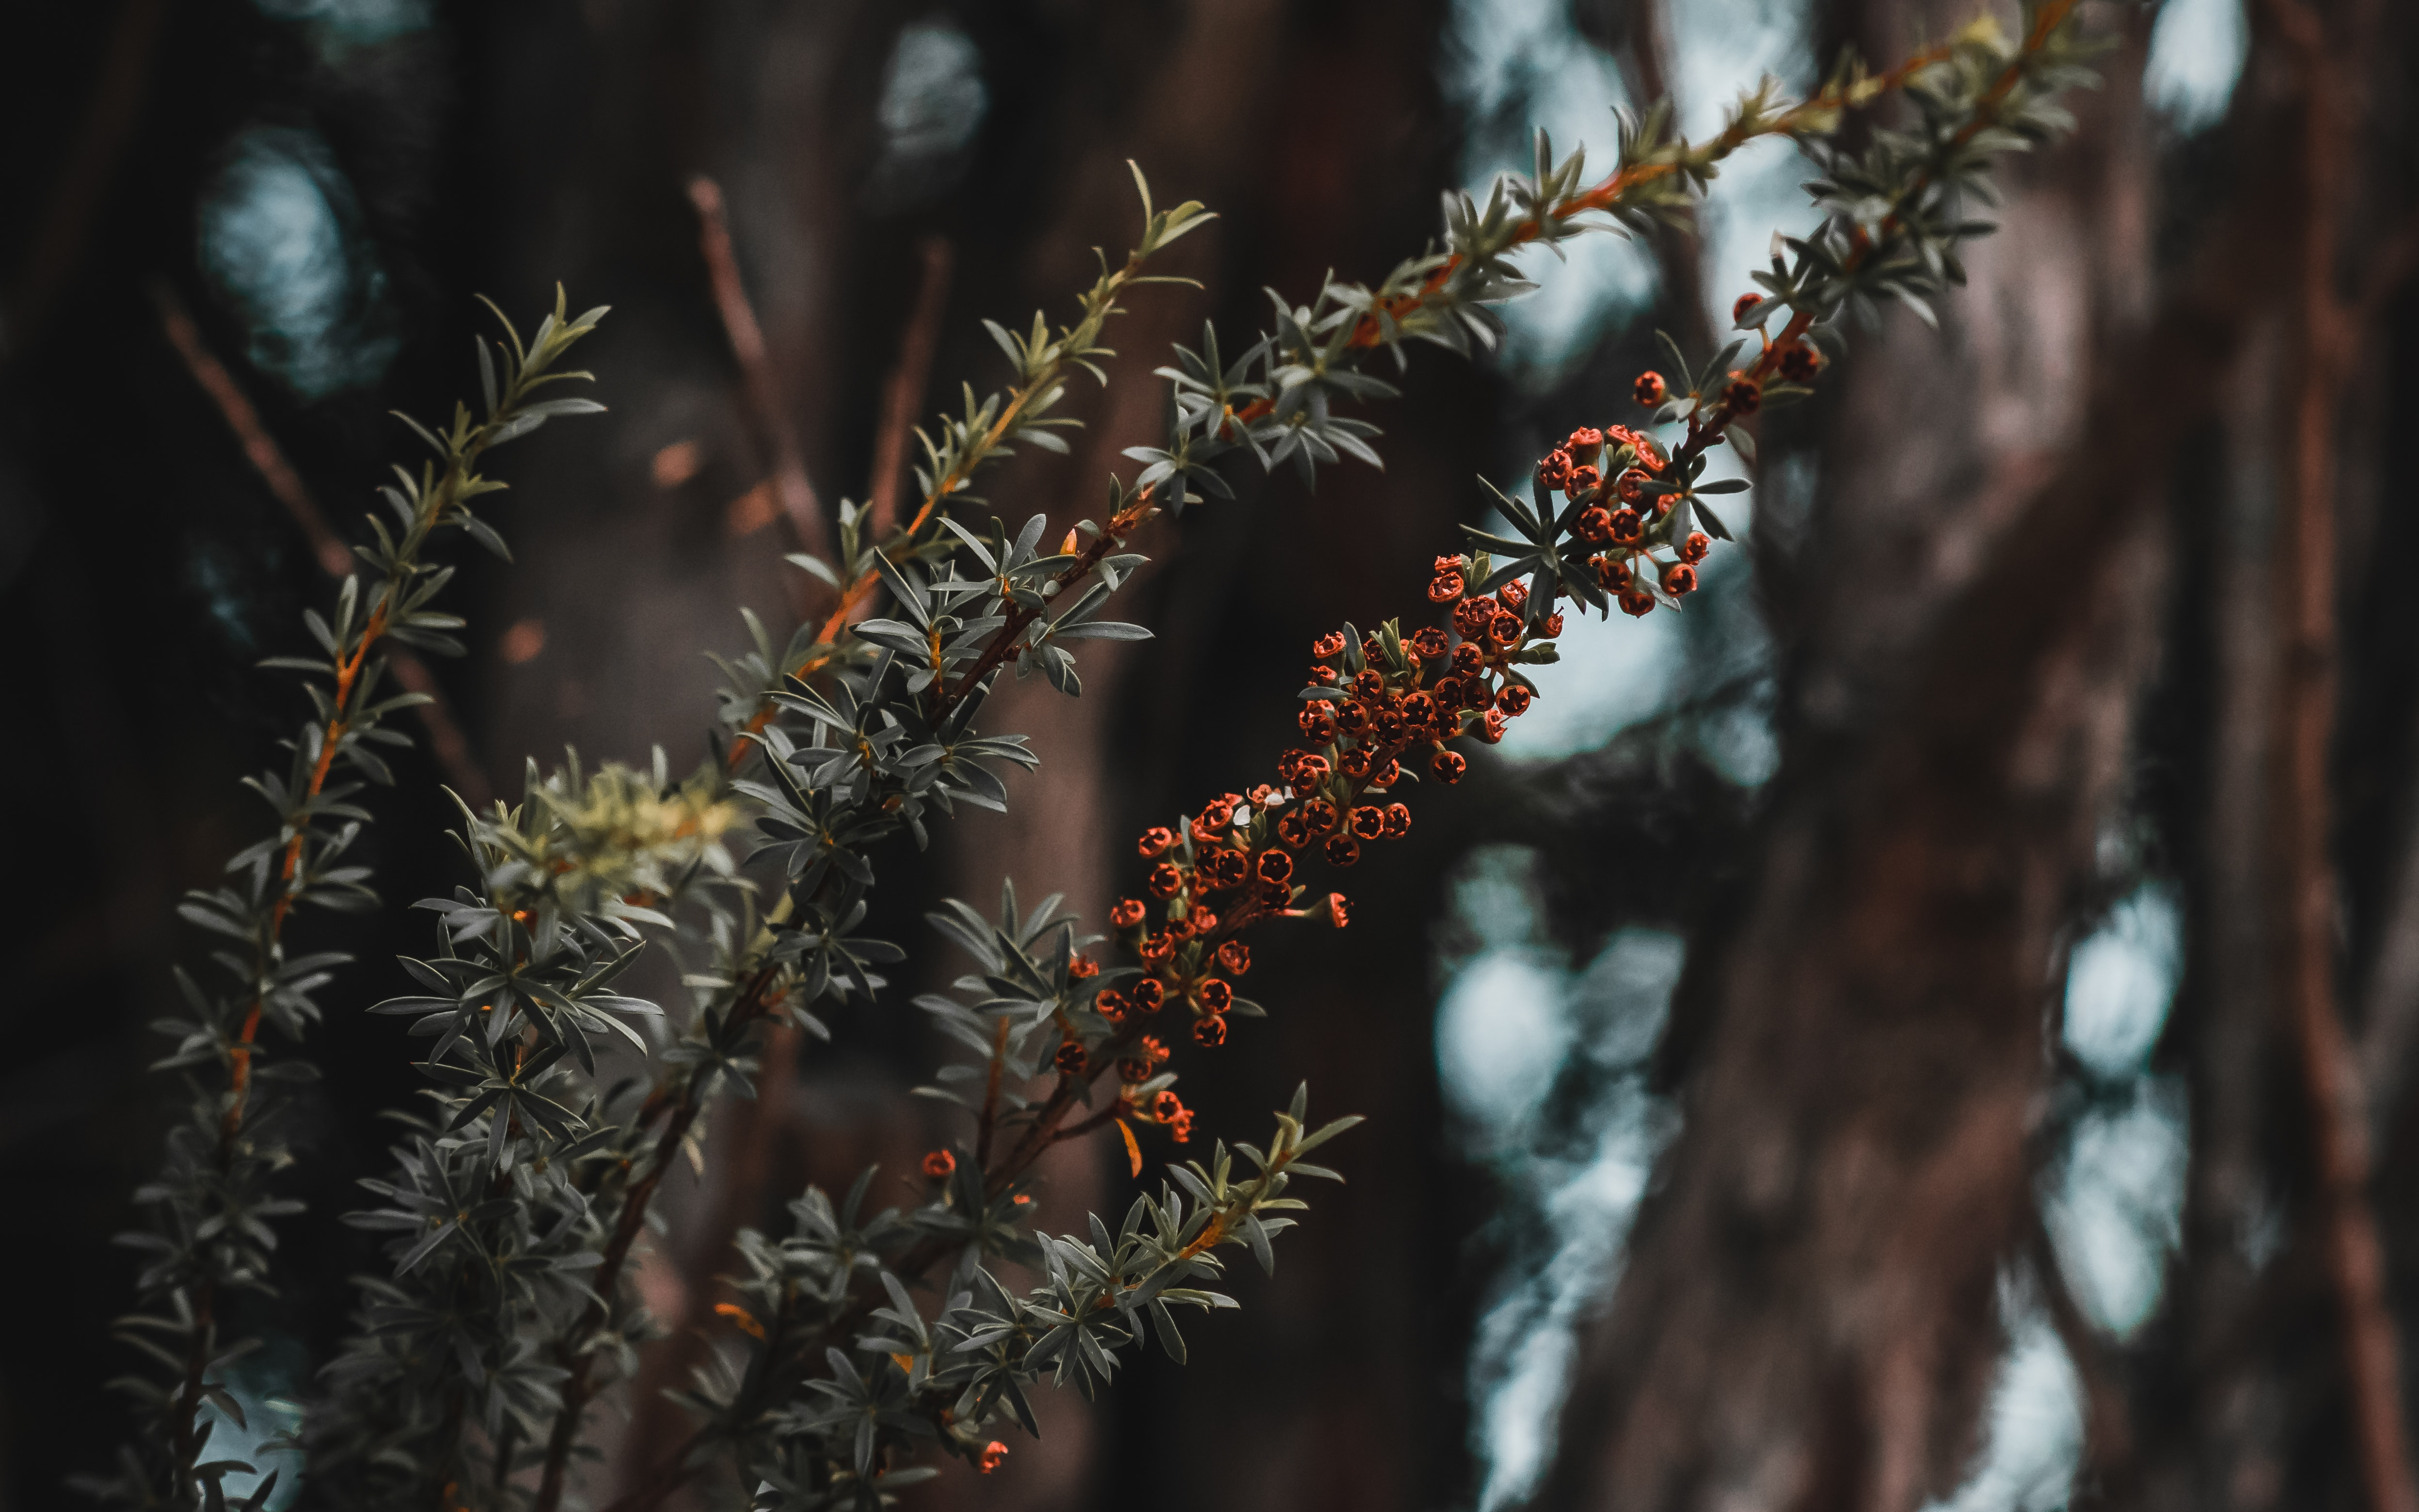 shallow focus photography of plants